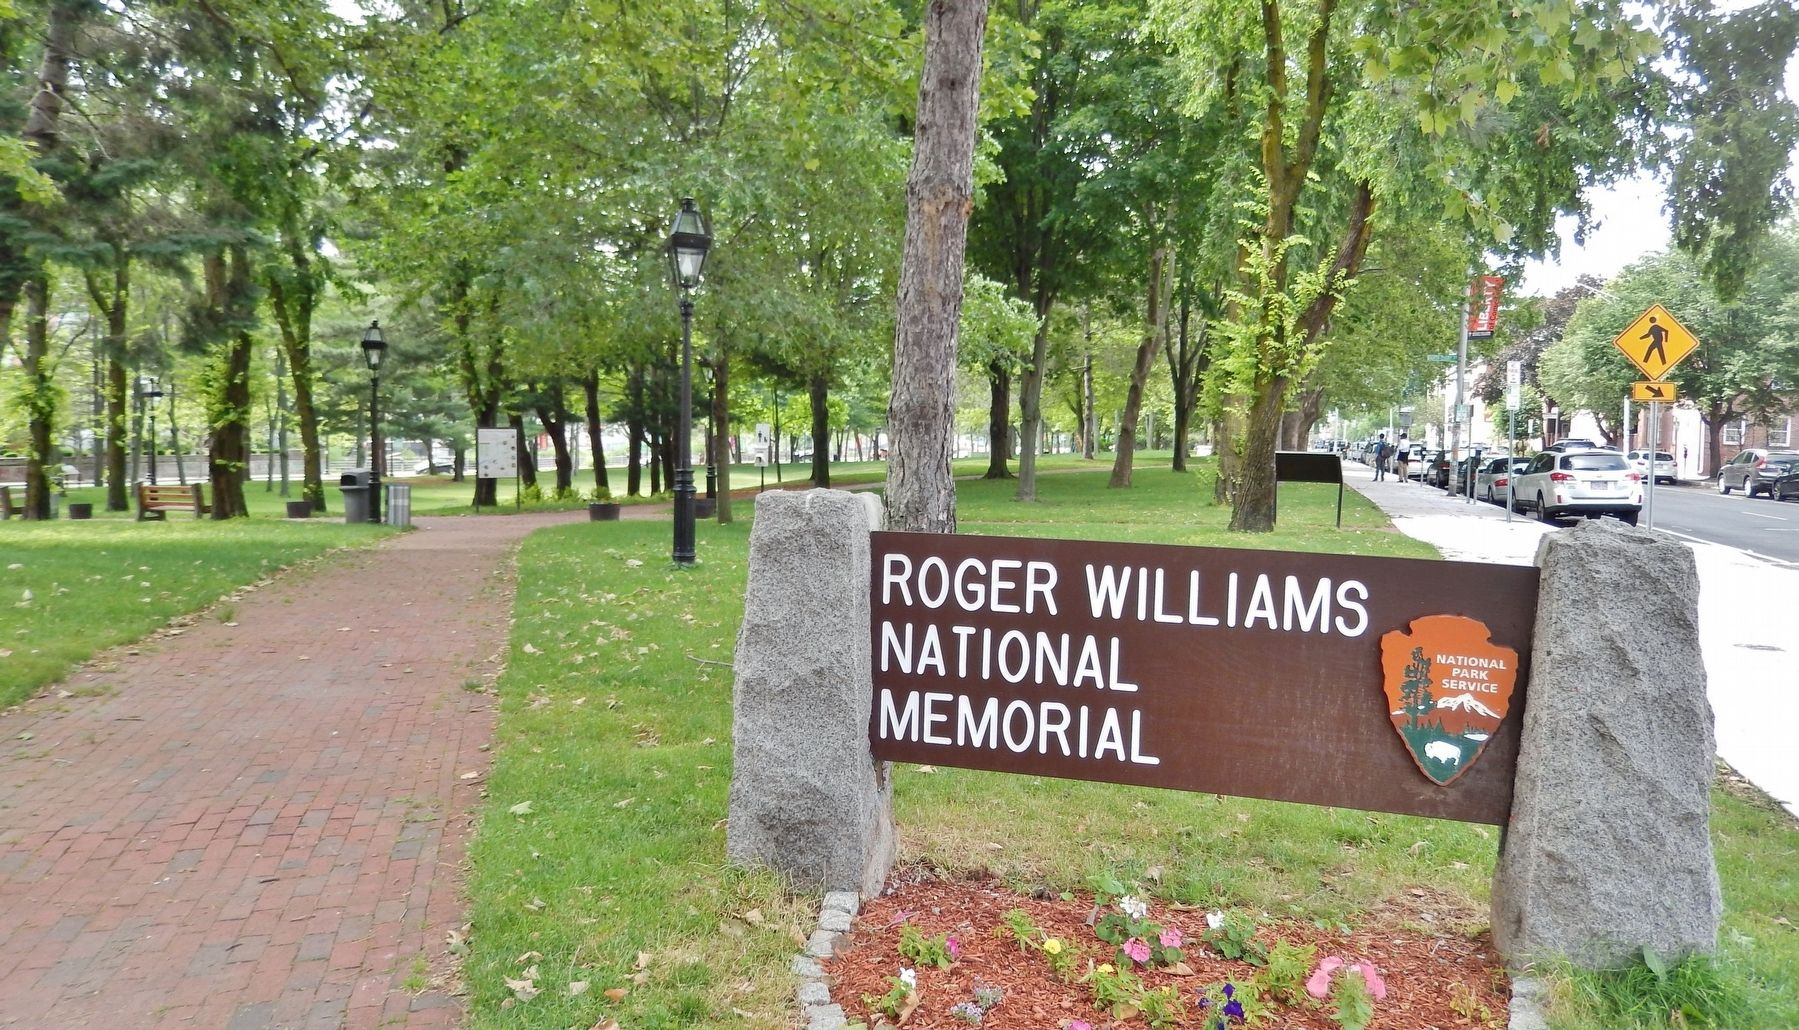 Roger Williams National Memorial Sign (<i>marker visible beside path in background</i>) image. Click for full size.